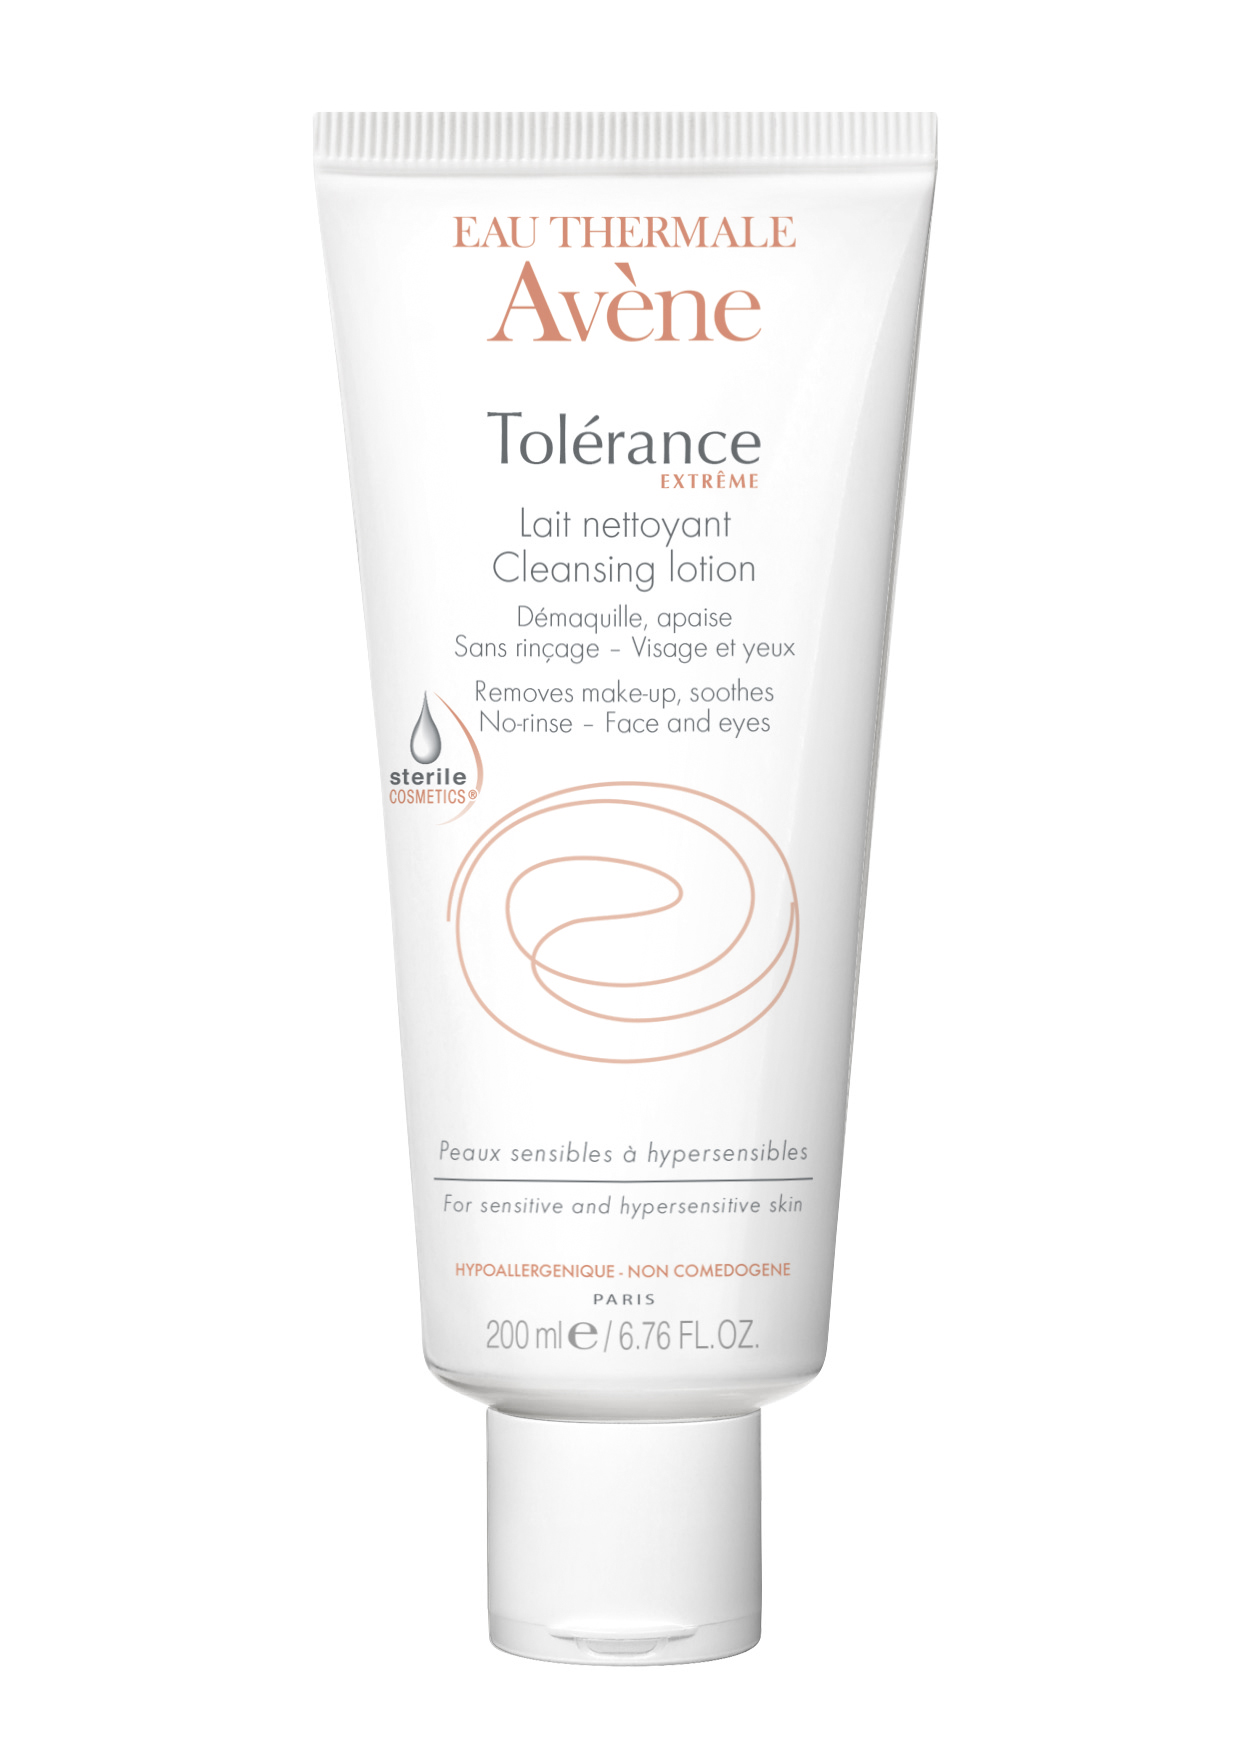 AVENE (Pierre Fabre It. SpA) Avene Tolerance Extreme Latte Detergente 200ml